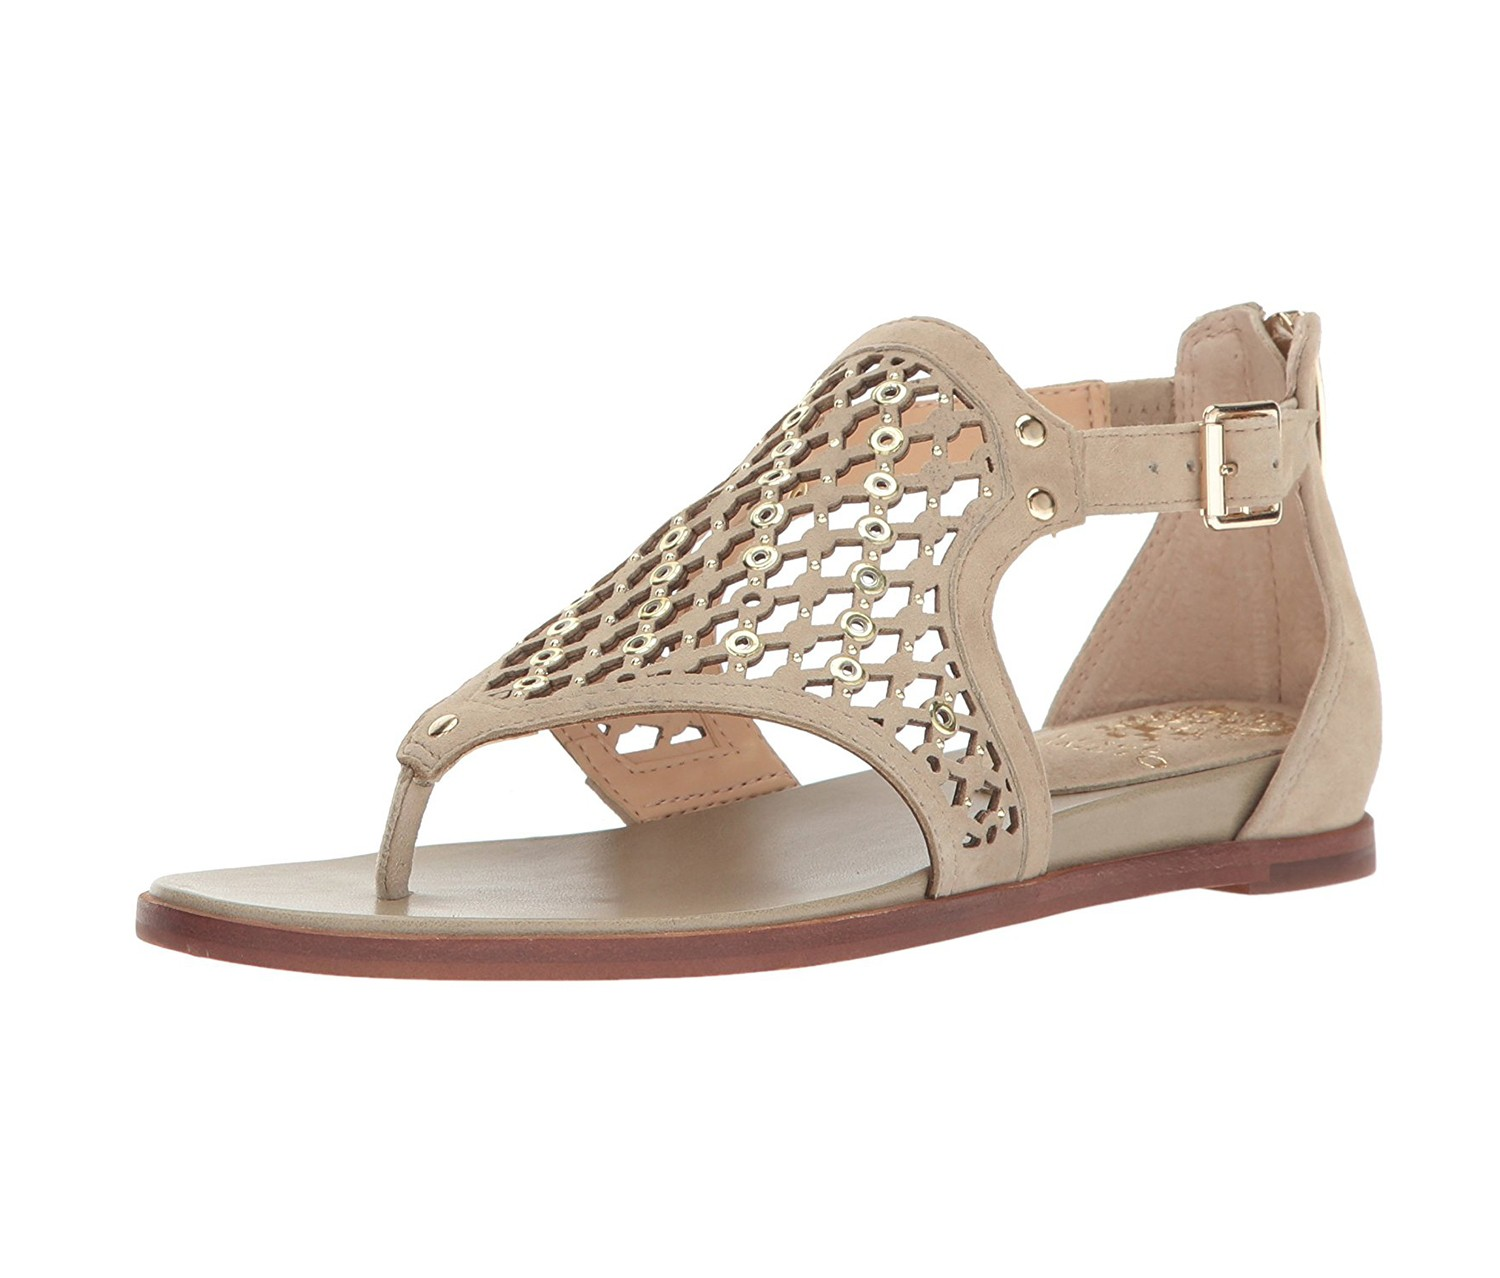 New Womens Vince Camuto Tan Sitara Leather Sandals Flats Buckle